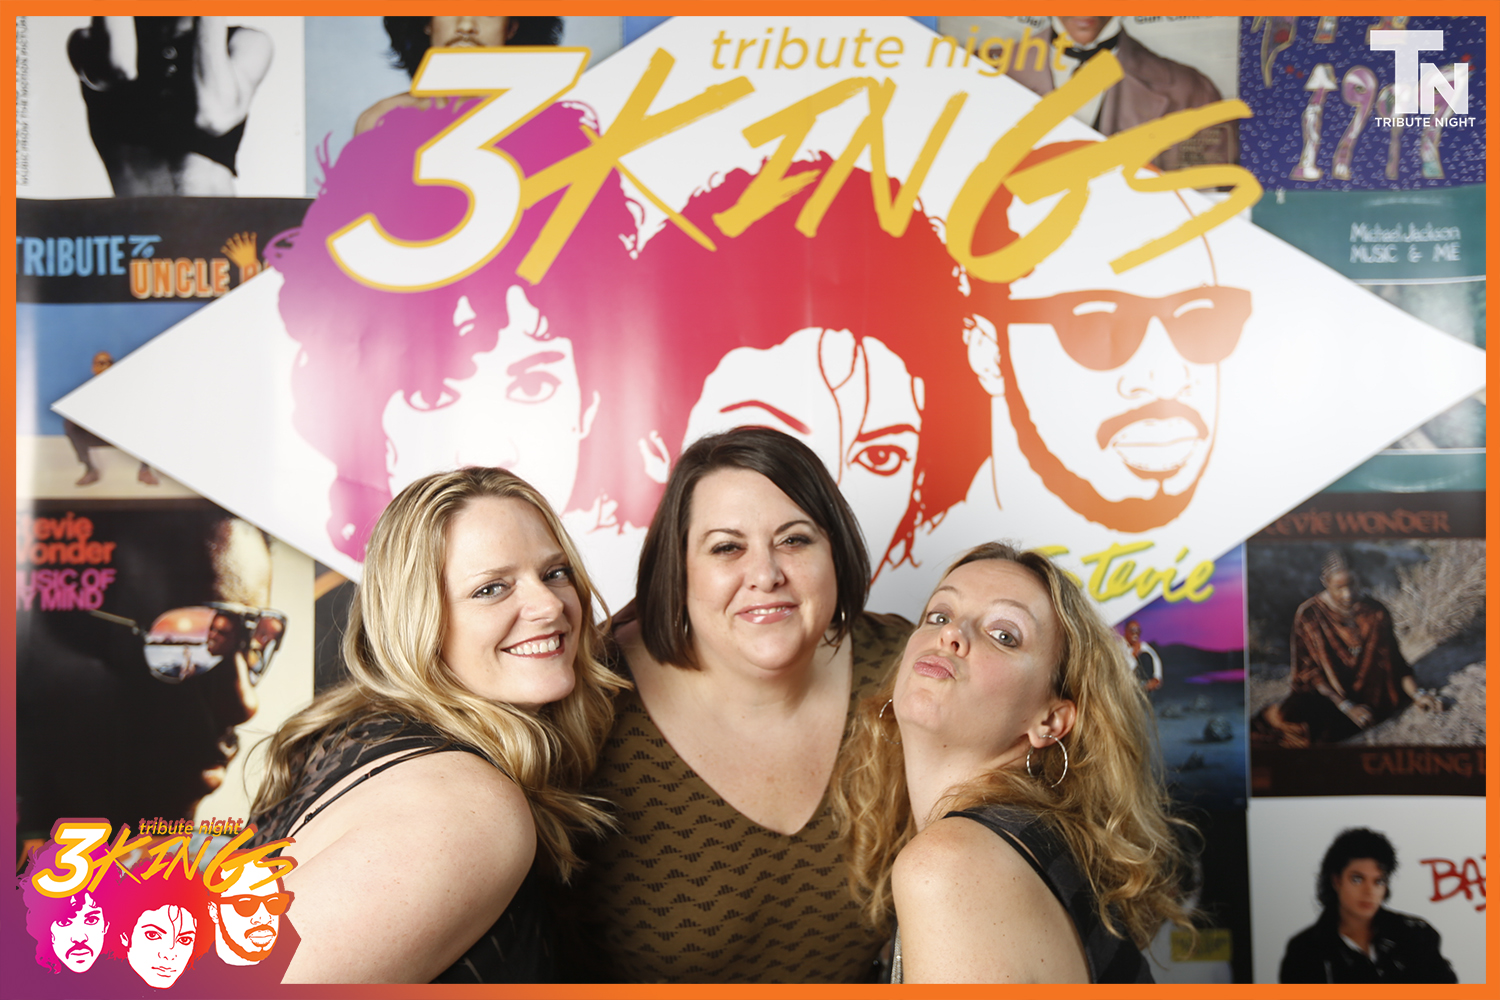 3kings Tribute Night Logo145.jpg